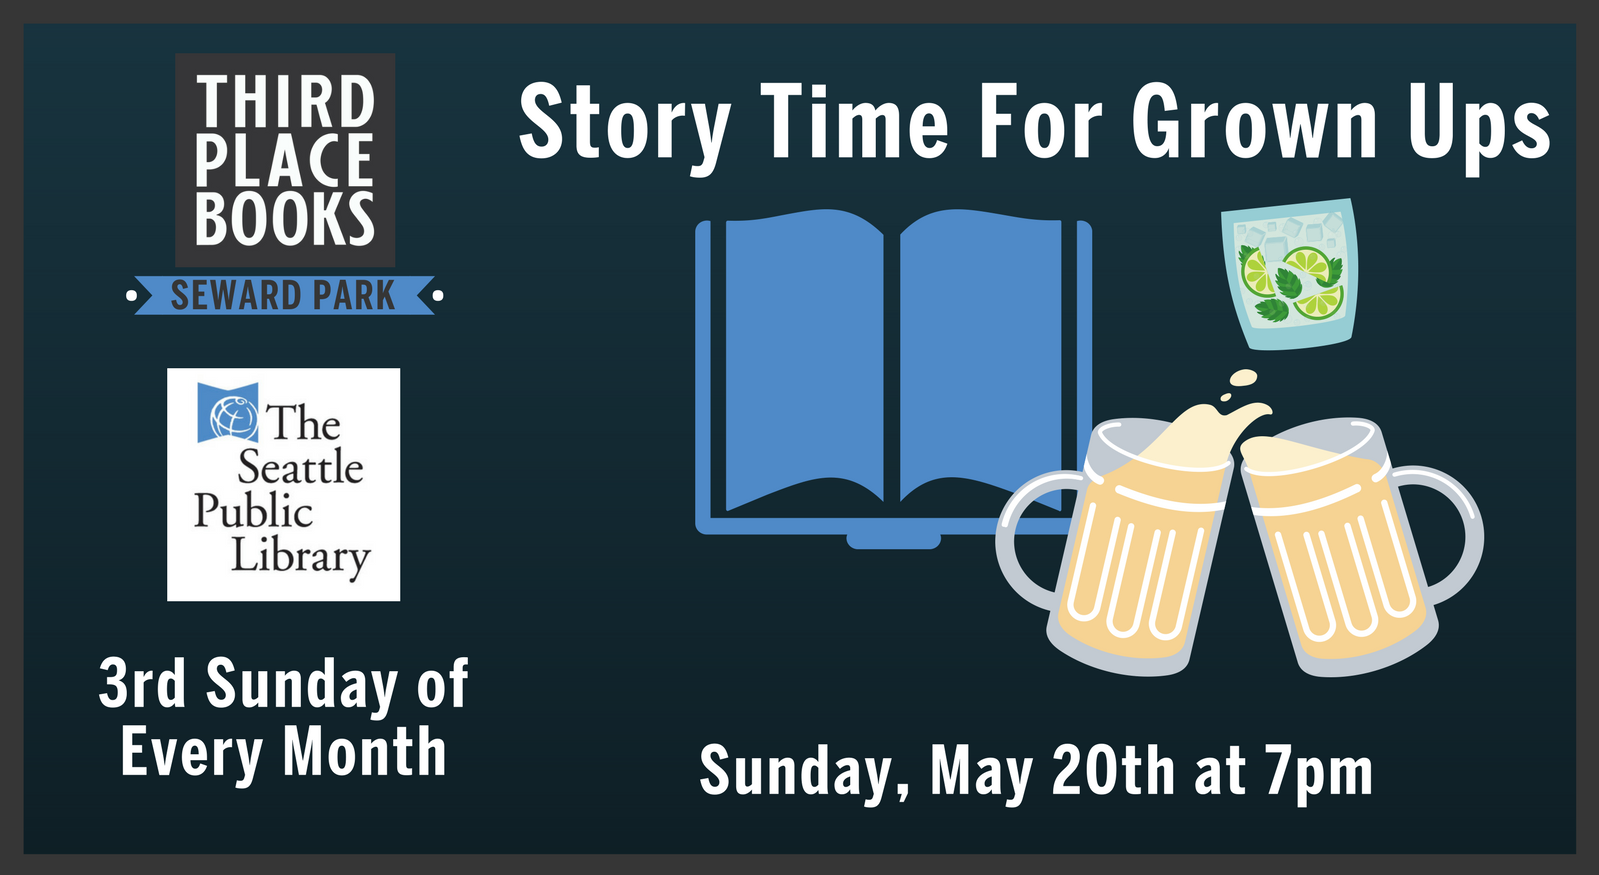 Story Time for Grown Ups! on Sunday, May 20th at 7pm